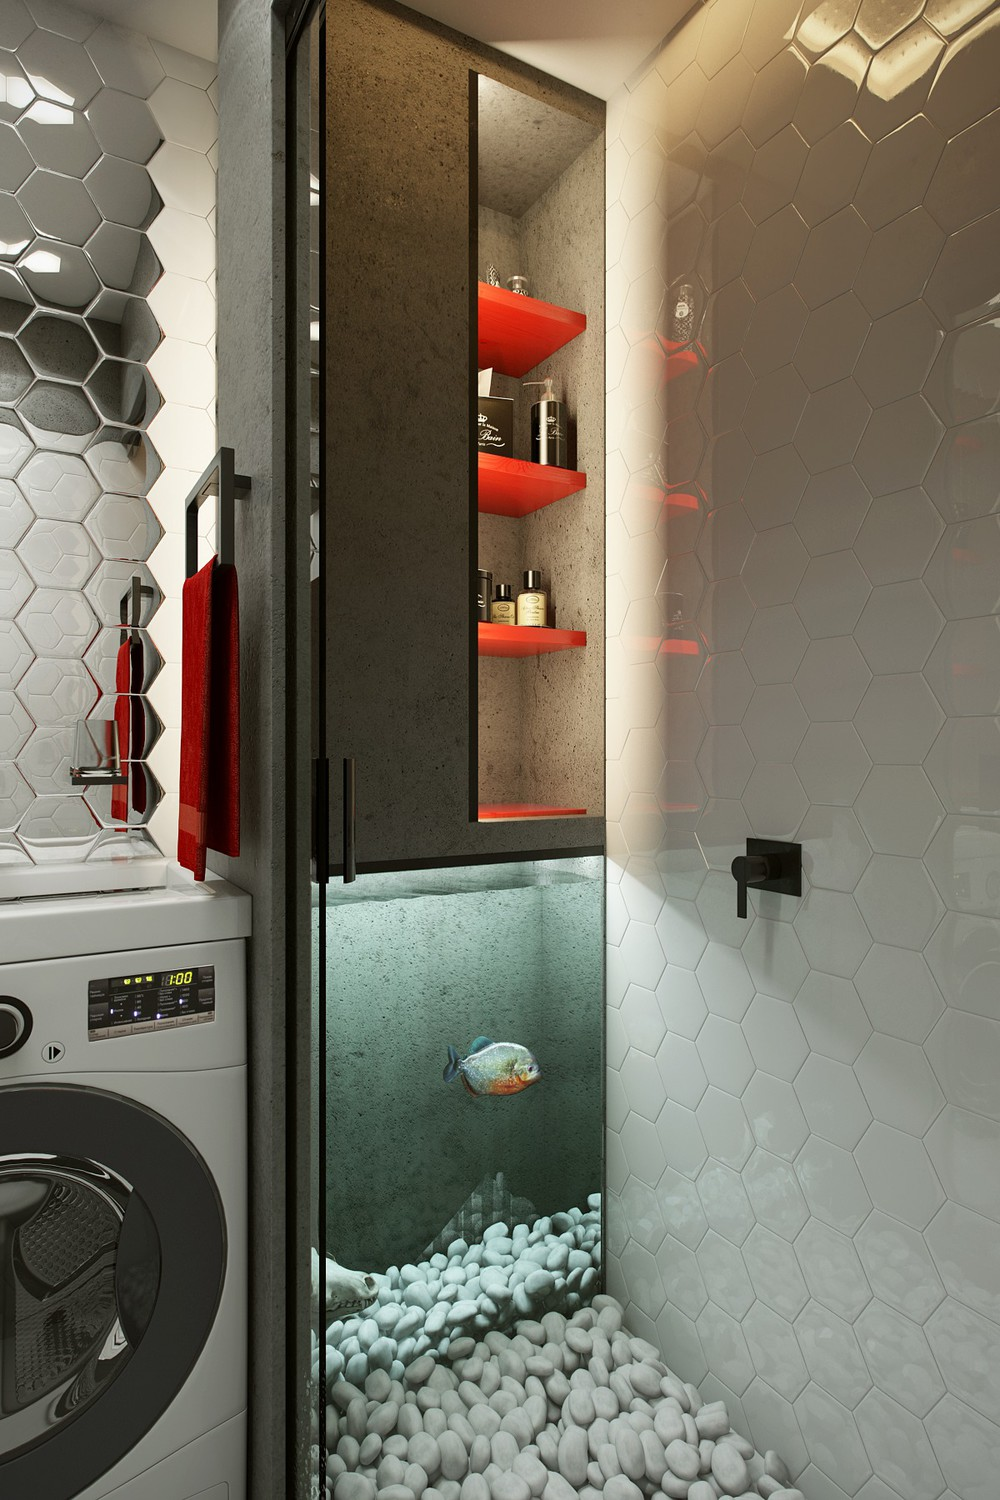 laundry-room-aquarium | interior design ideas.